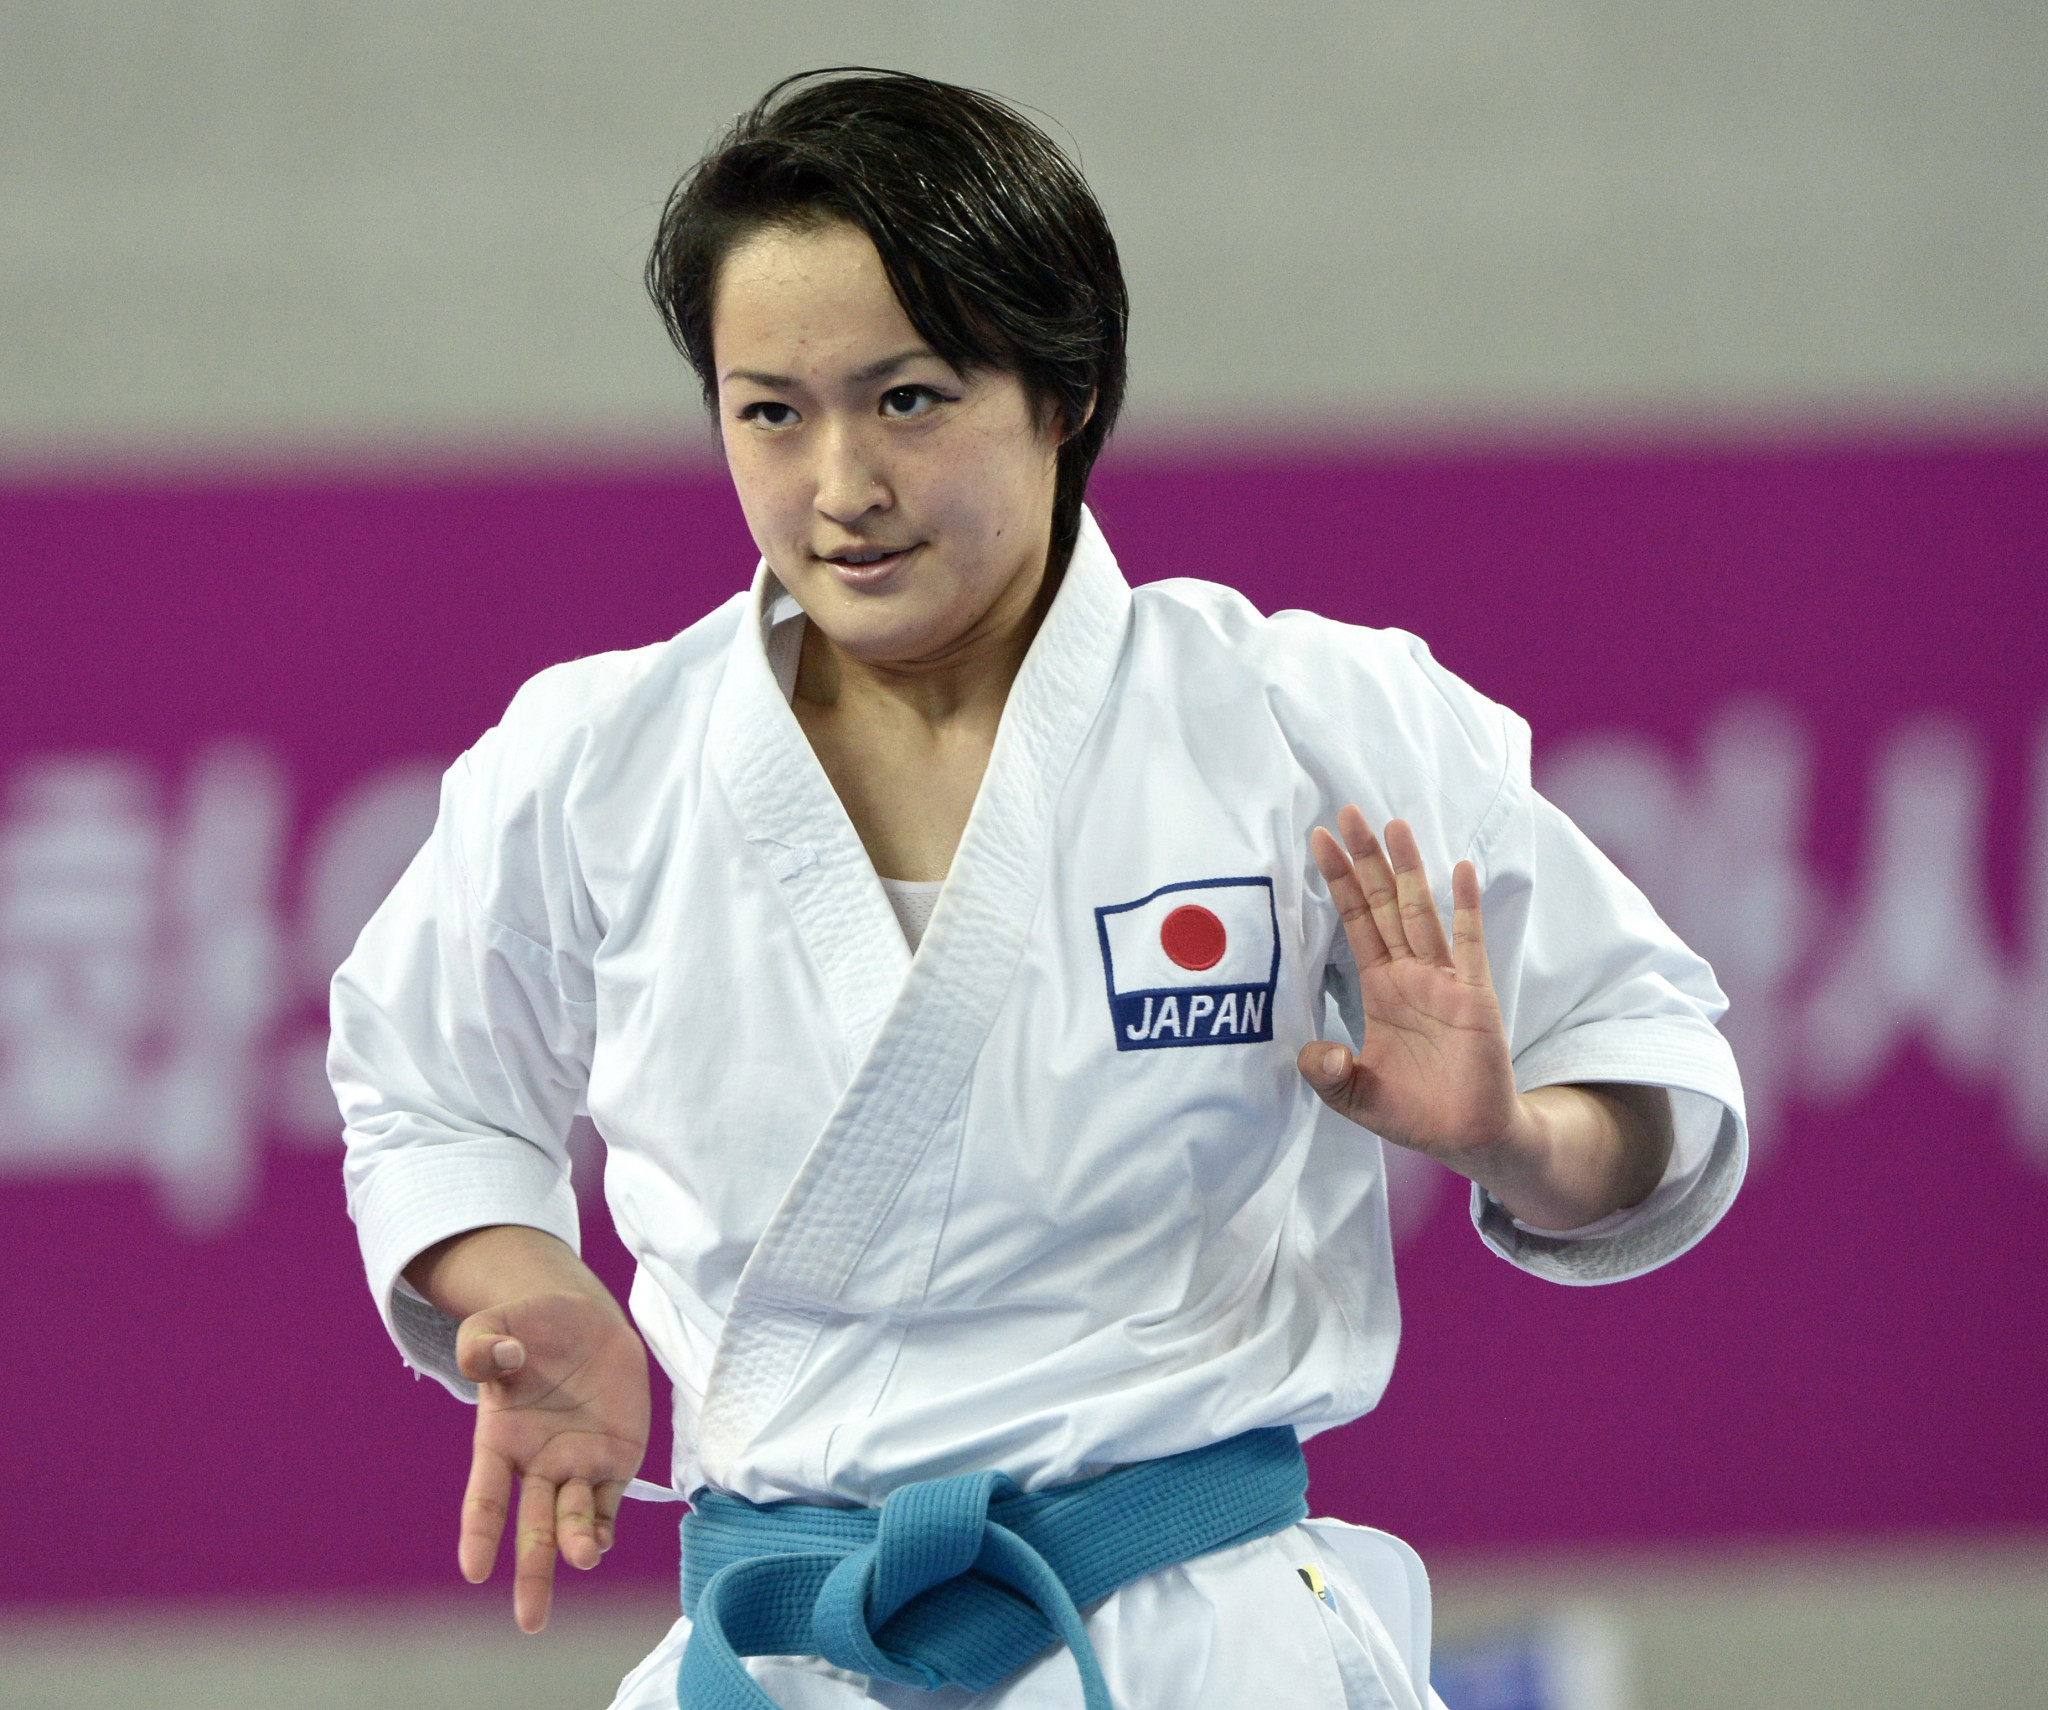 Japan win every kata medal at Karate1 Series A in Istanbul